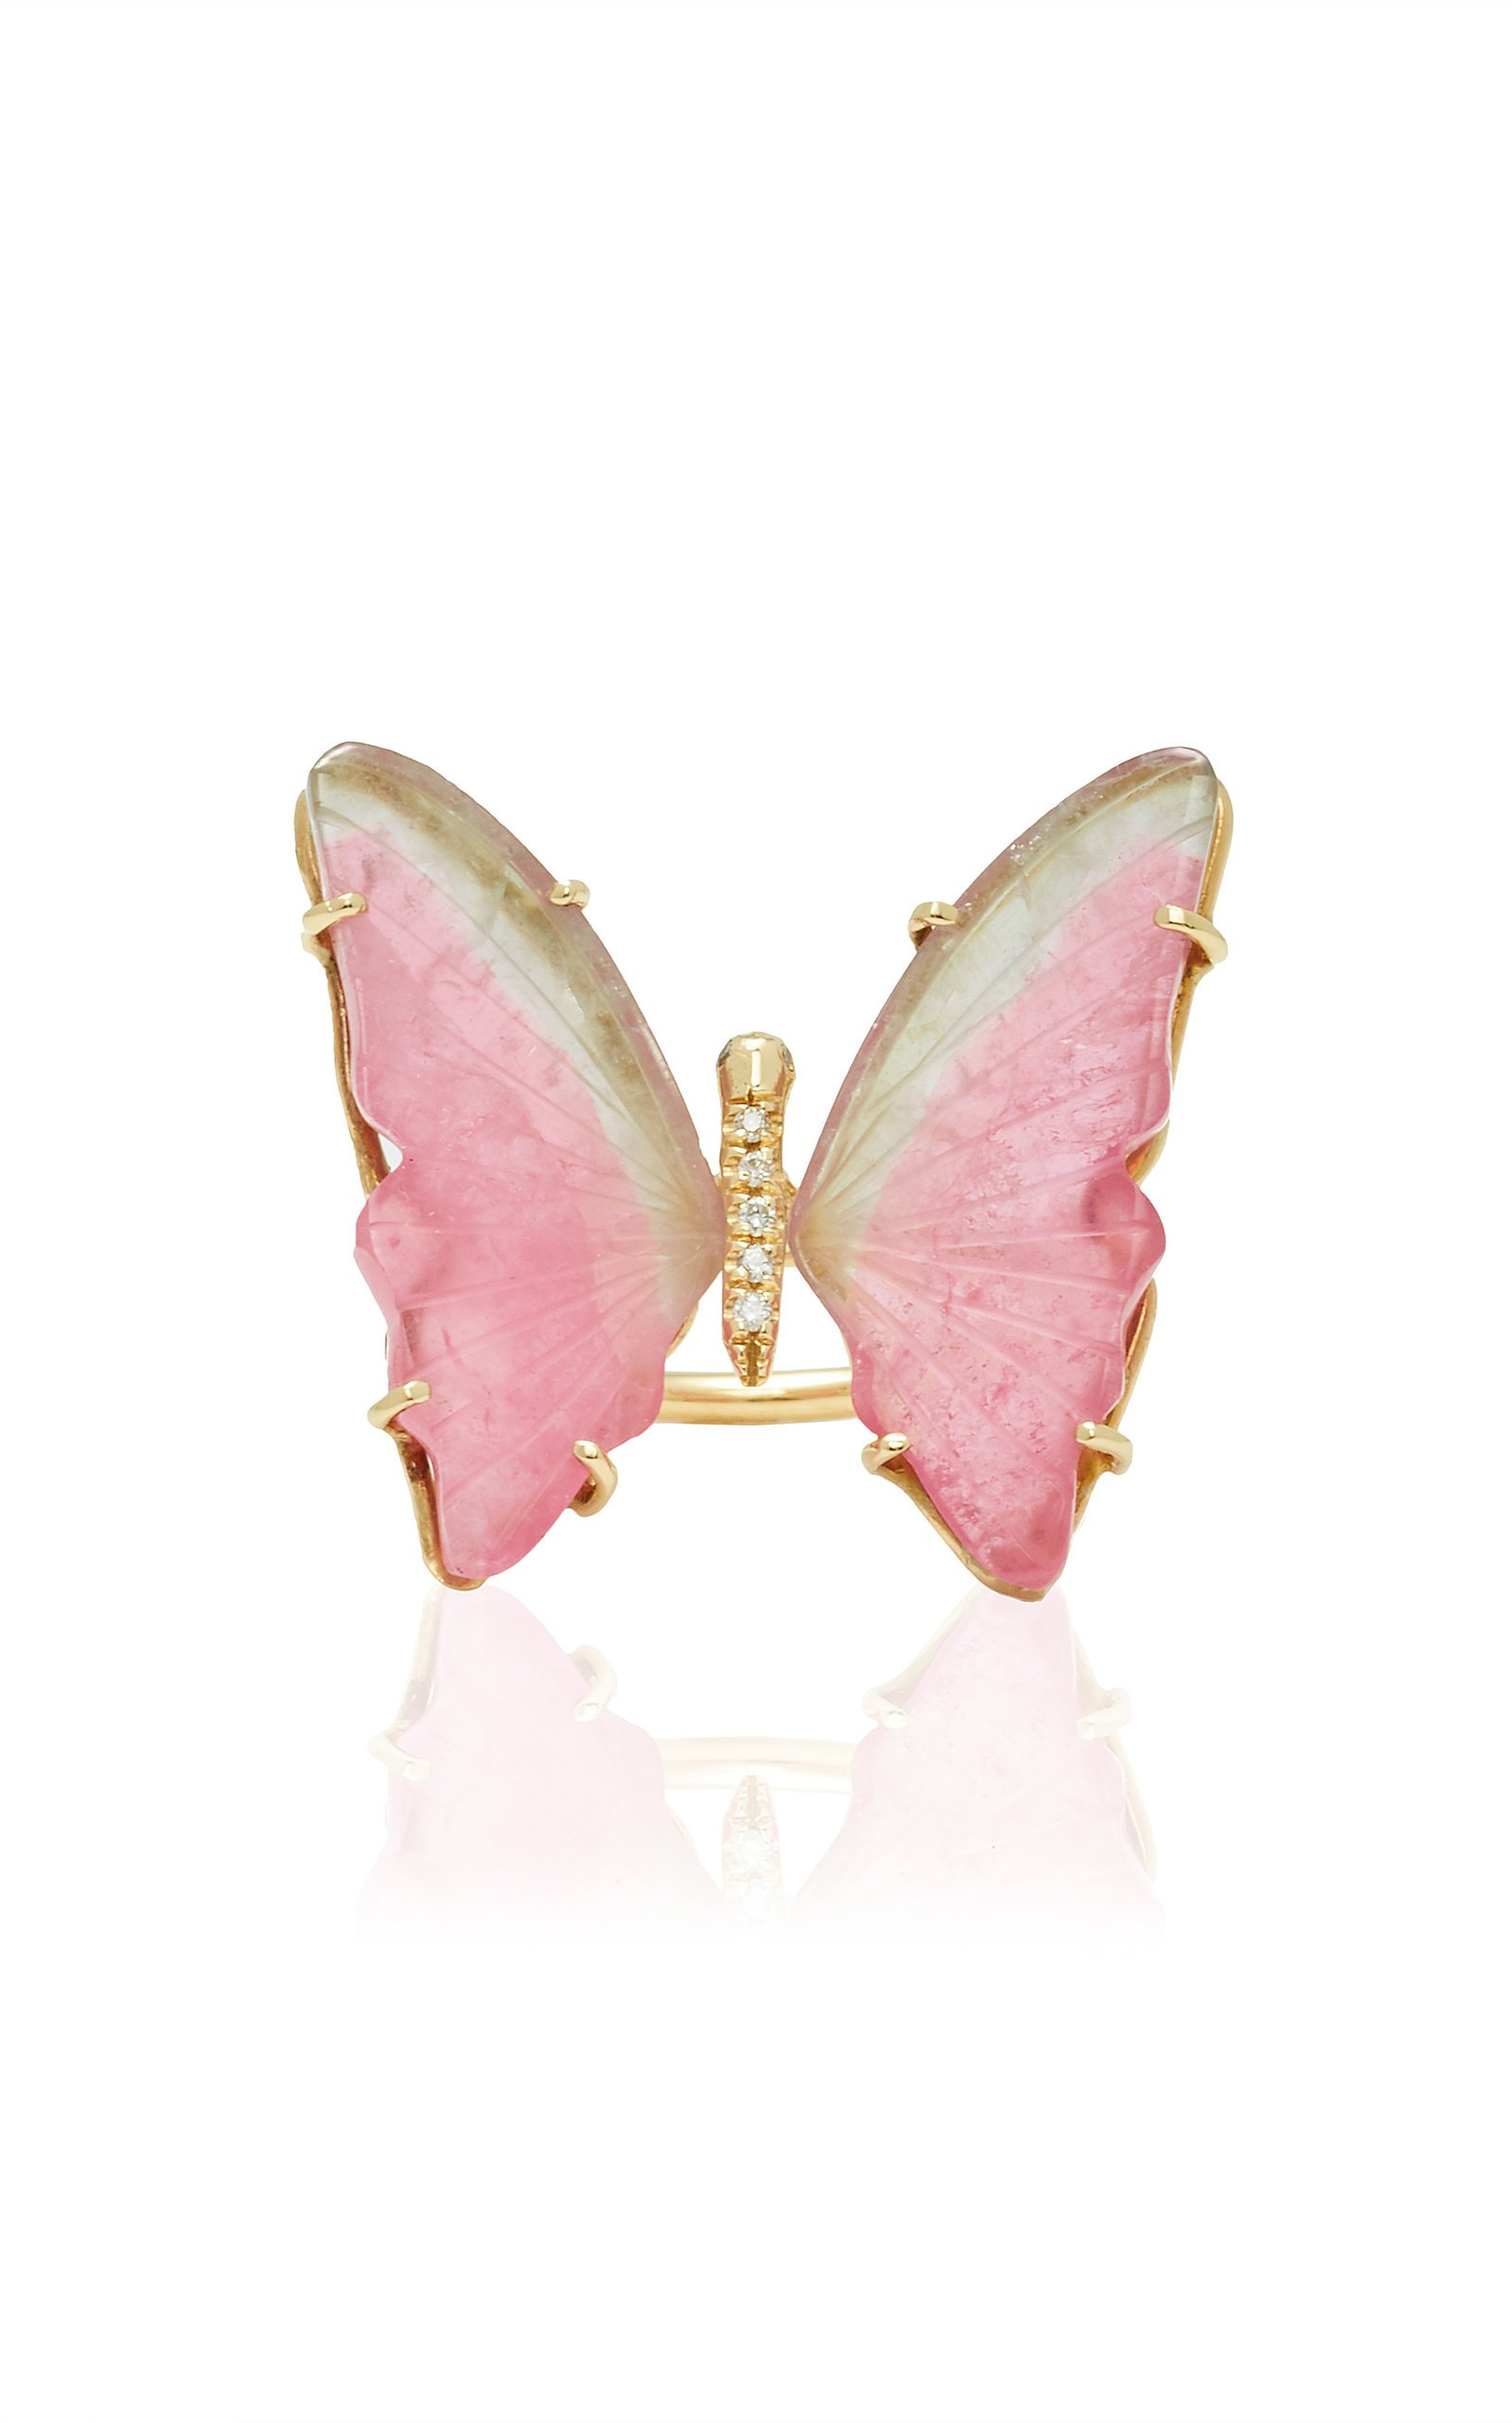 Jacquie Aiche Medium Pink Tourmaline Butterfly Ring